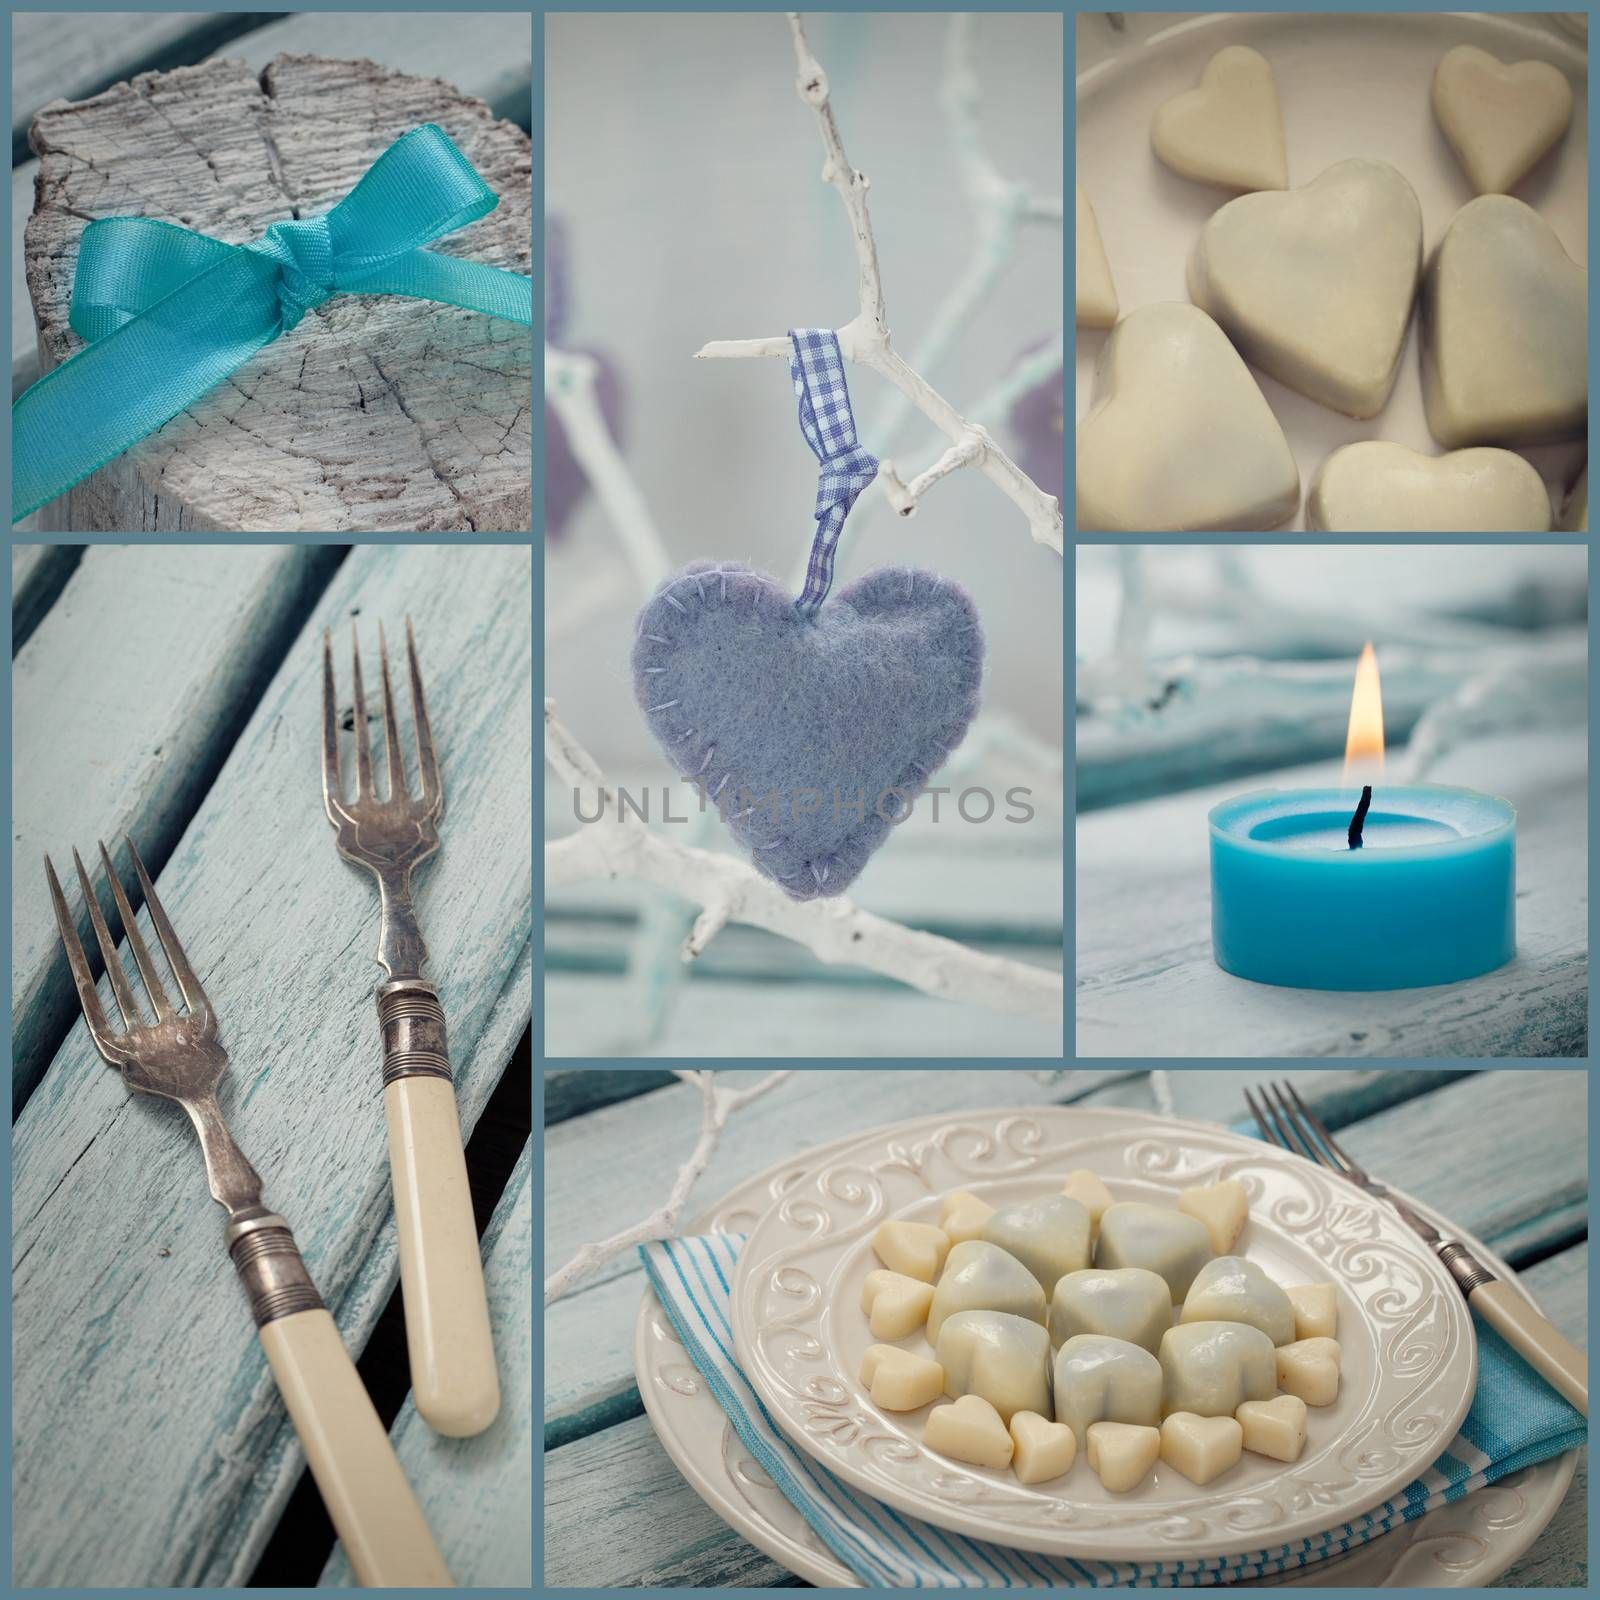 Restaurant series. Photo Collage of fancy Valentines dinner.  Mosaic with Holiday luxury table setting with hearts and chocolate